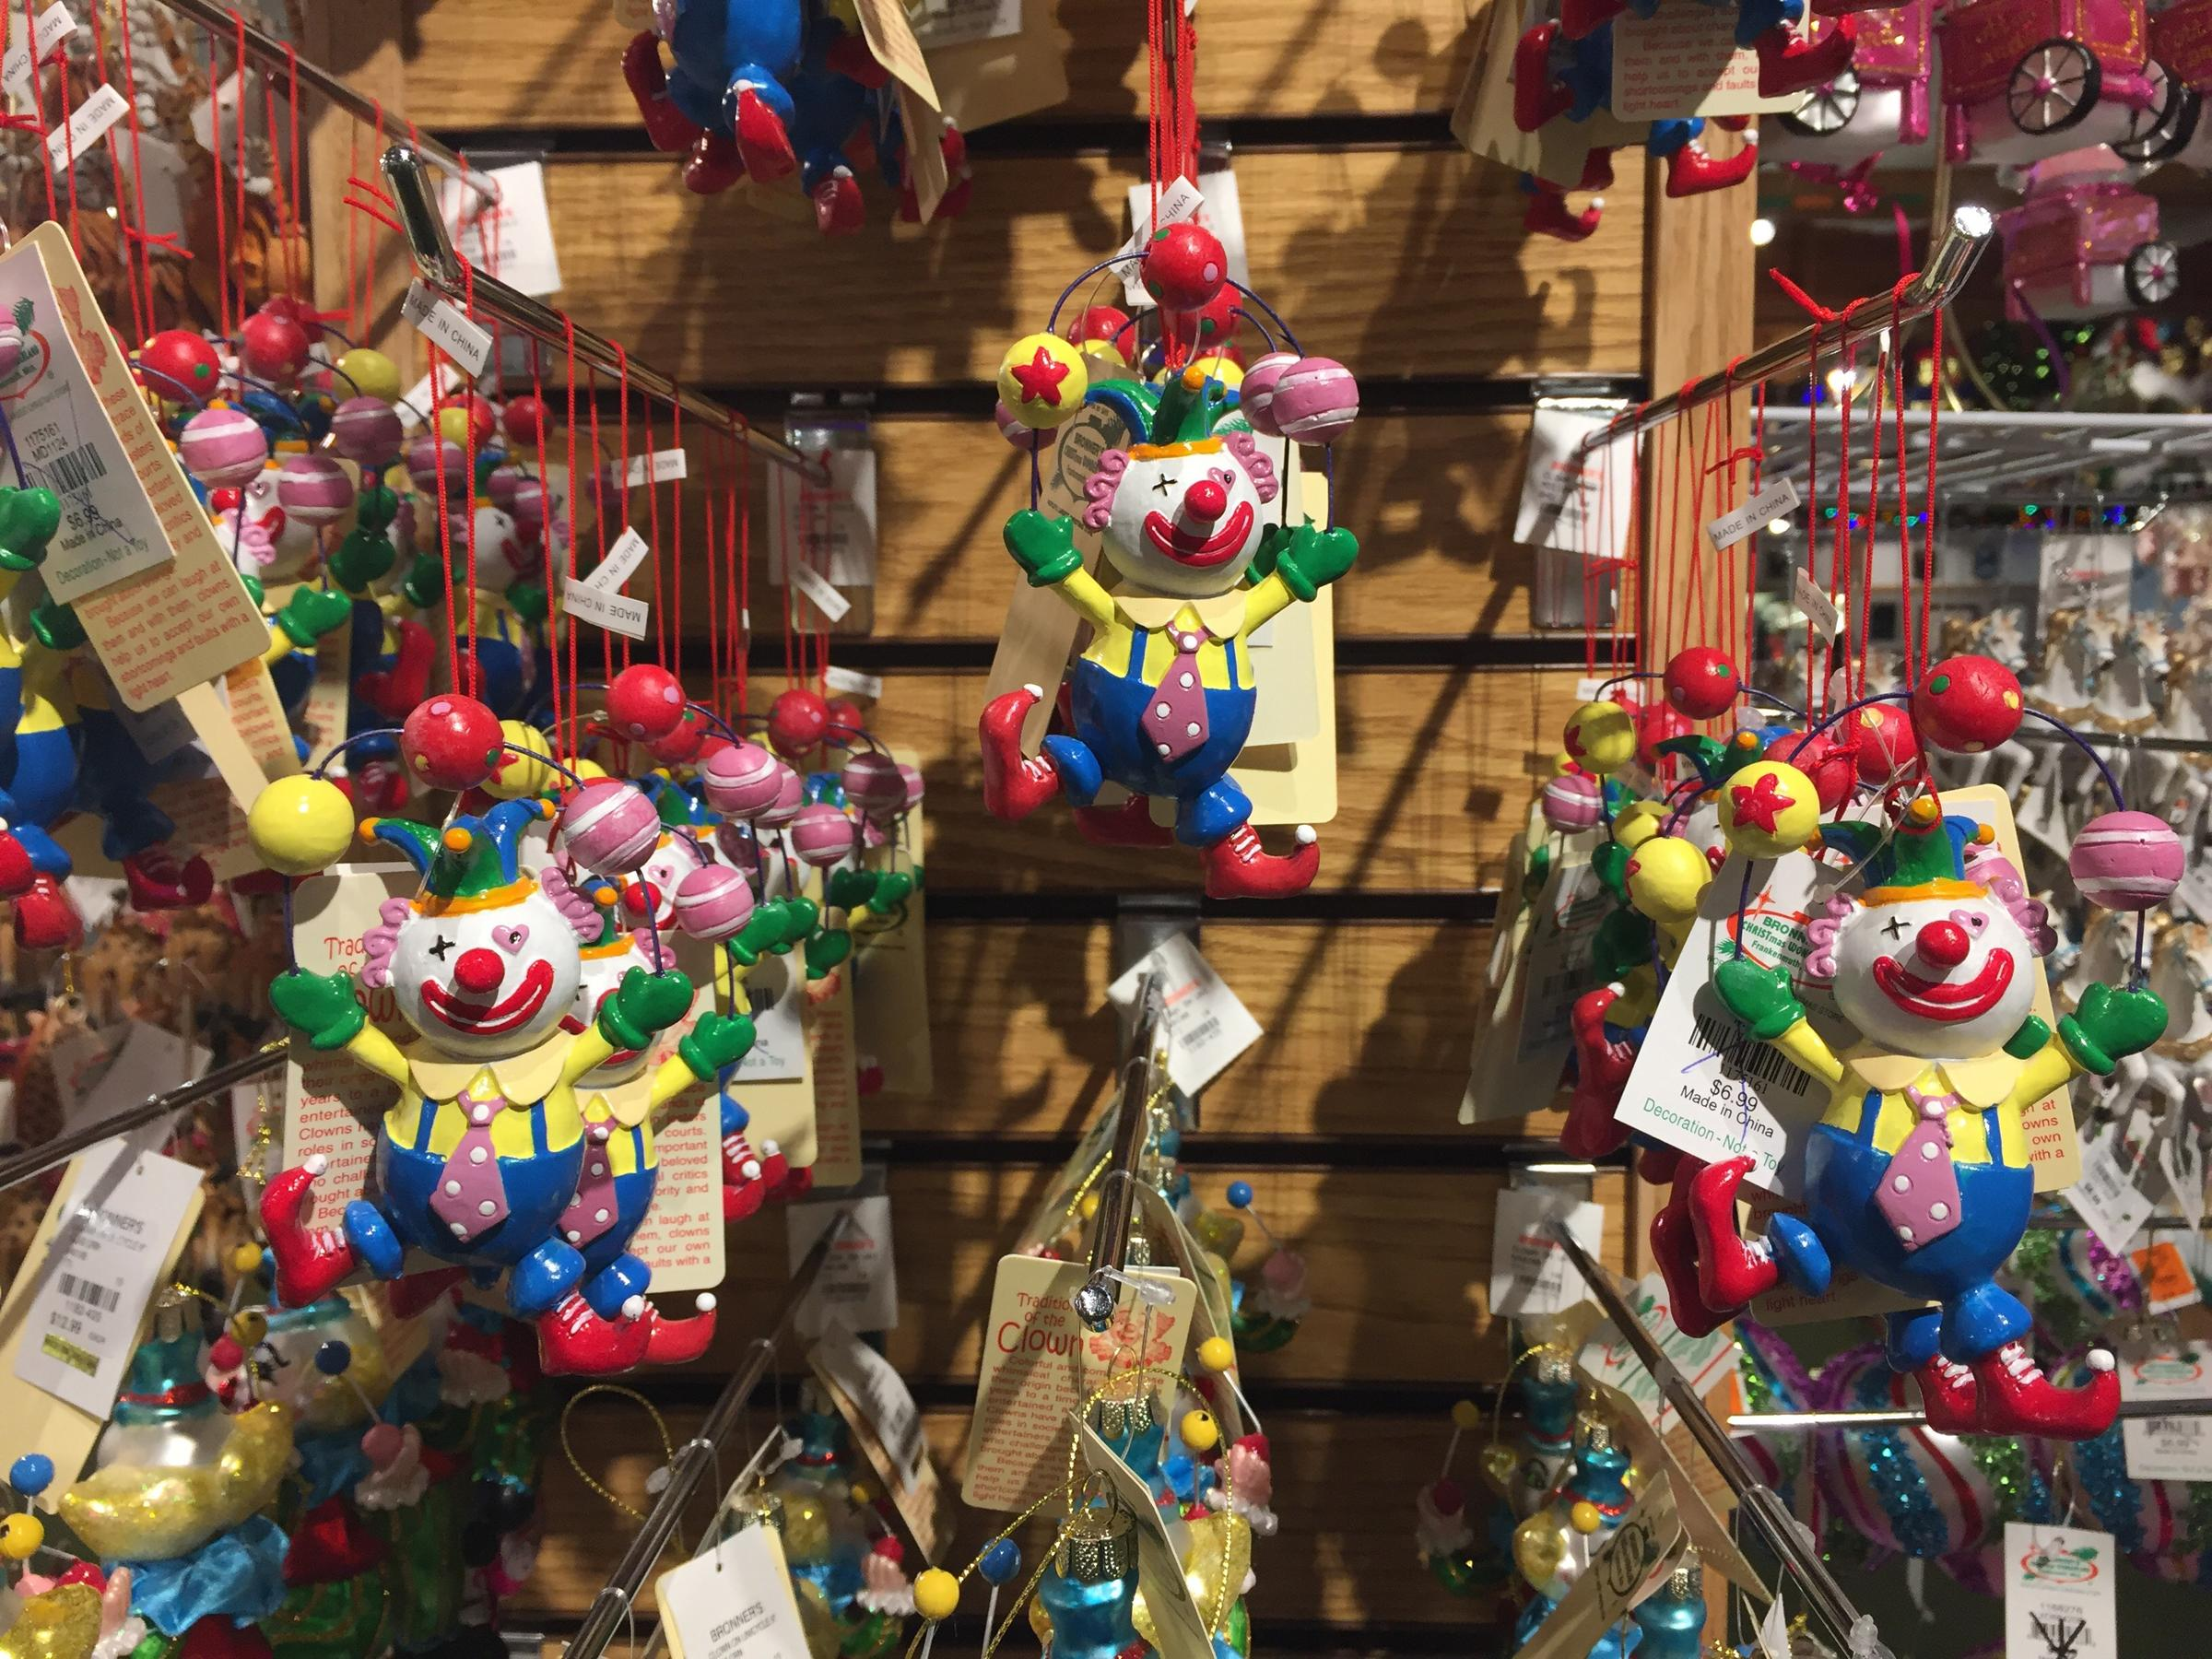 some ornaments on display in the store